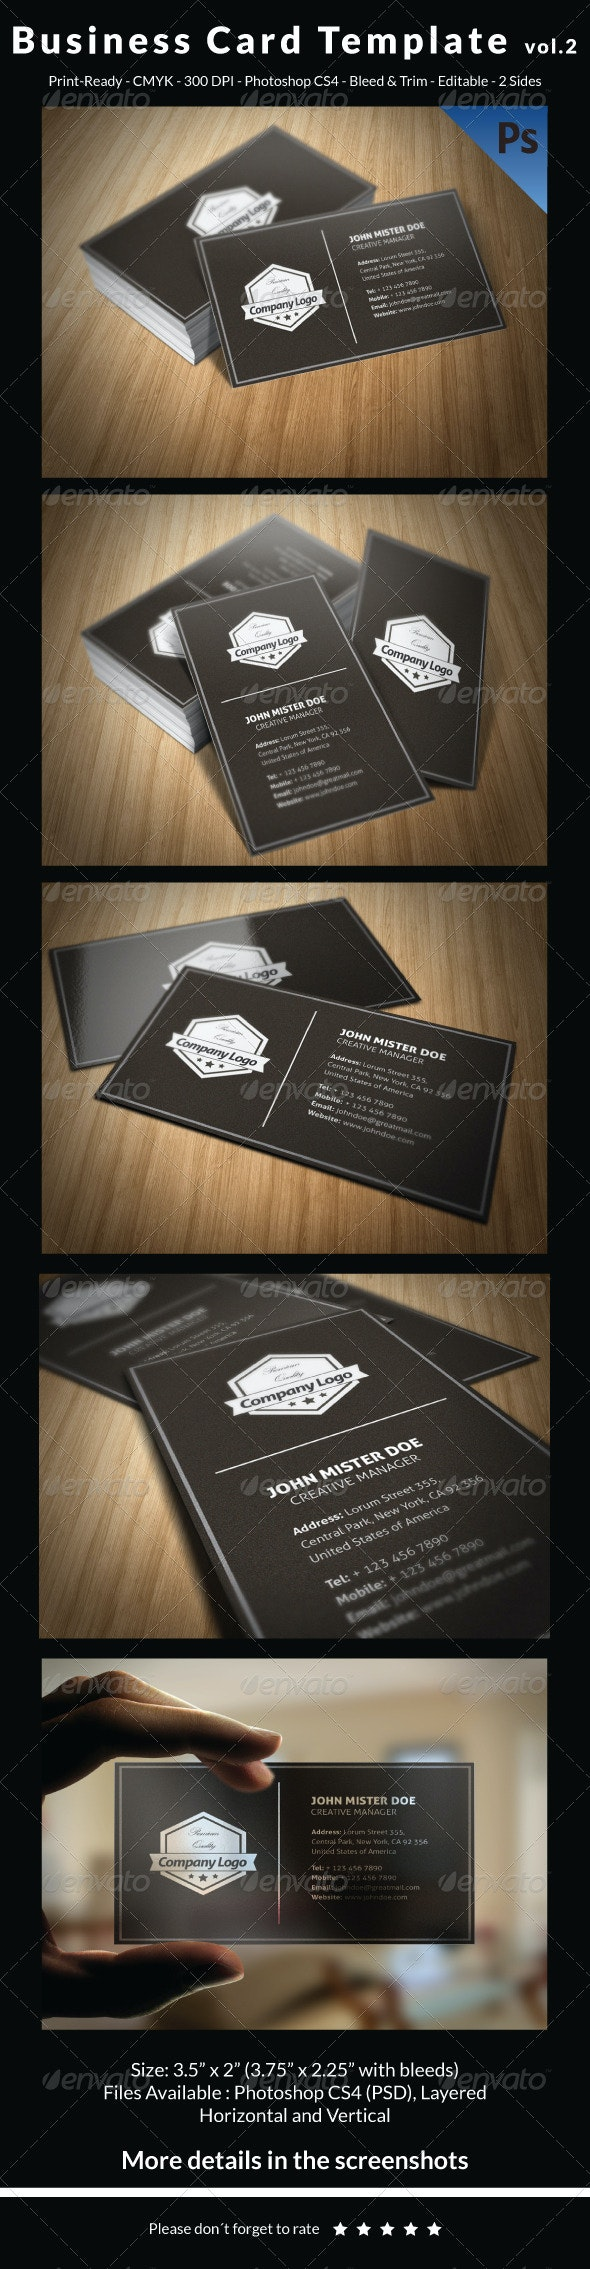 Business Card Template vol.2 - Retro/Vintage Business Cards